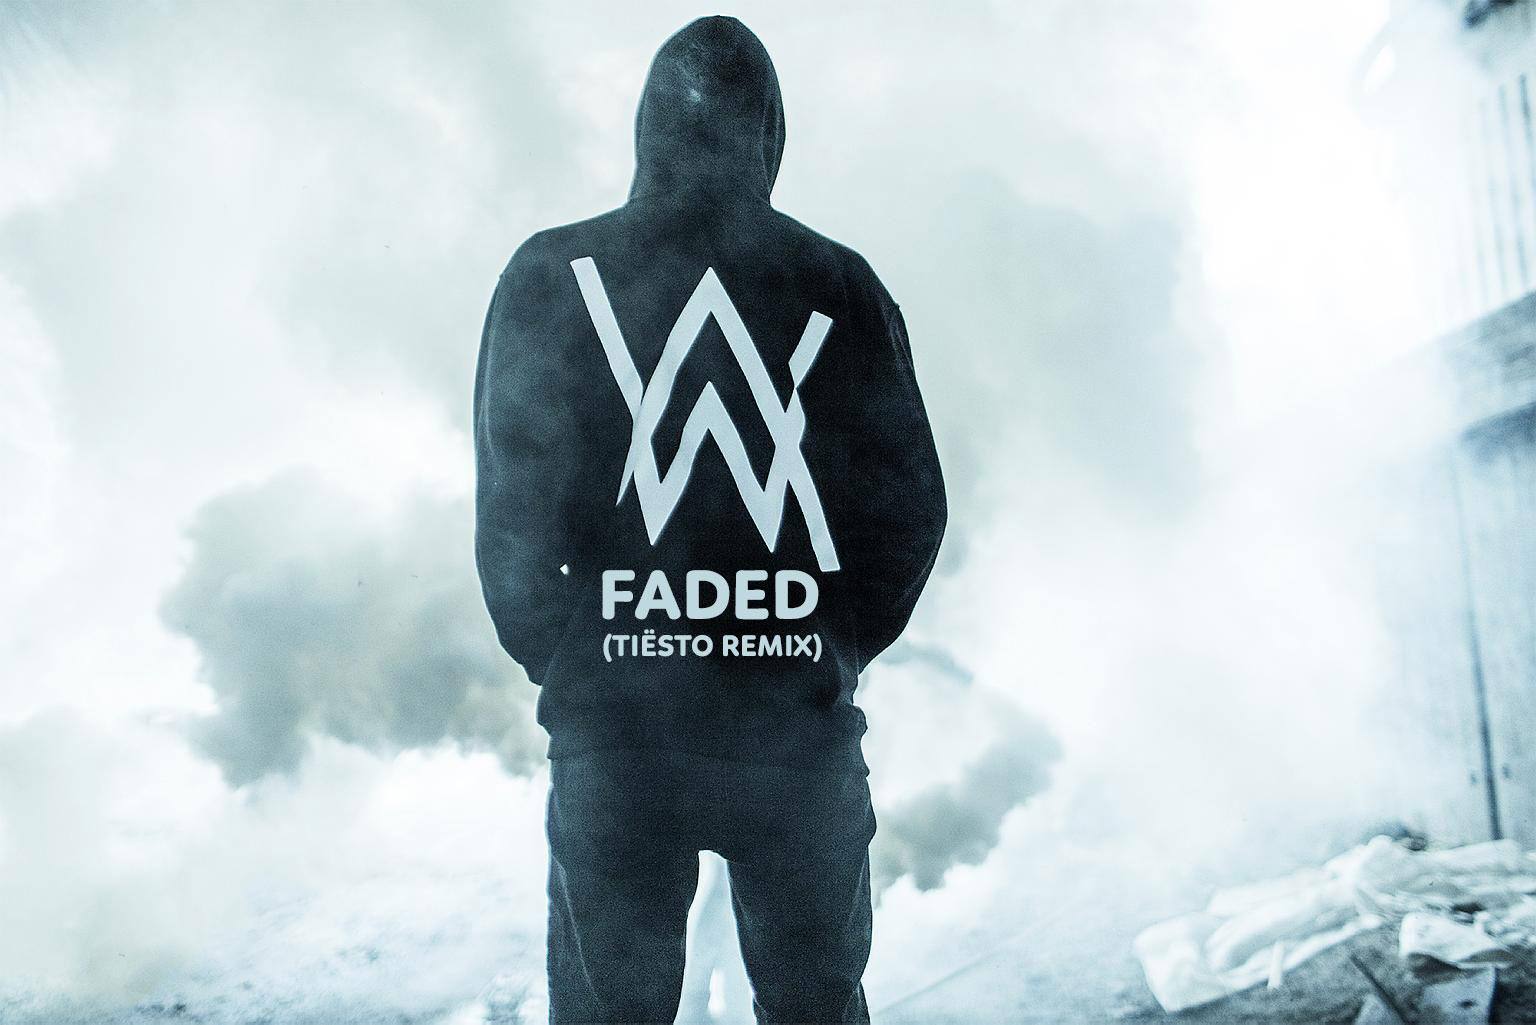 descargar la musica faded